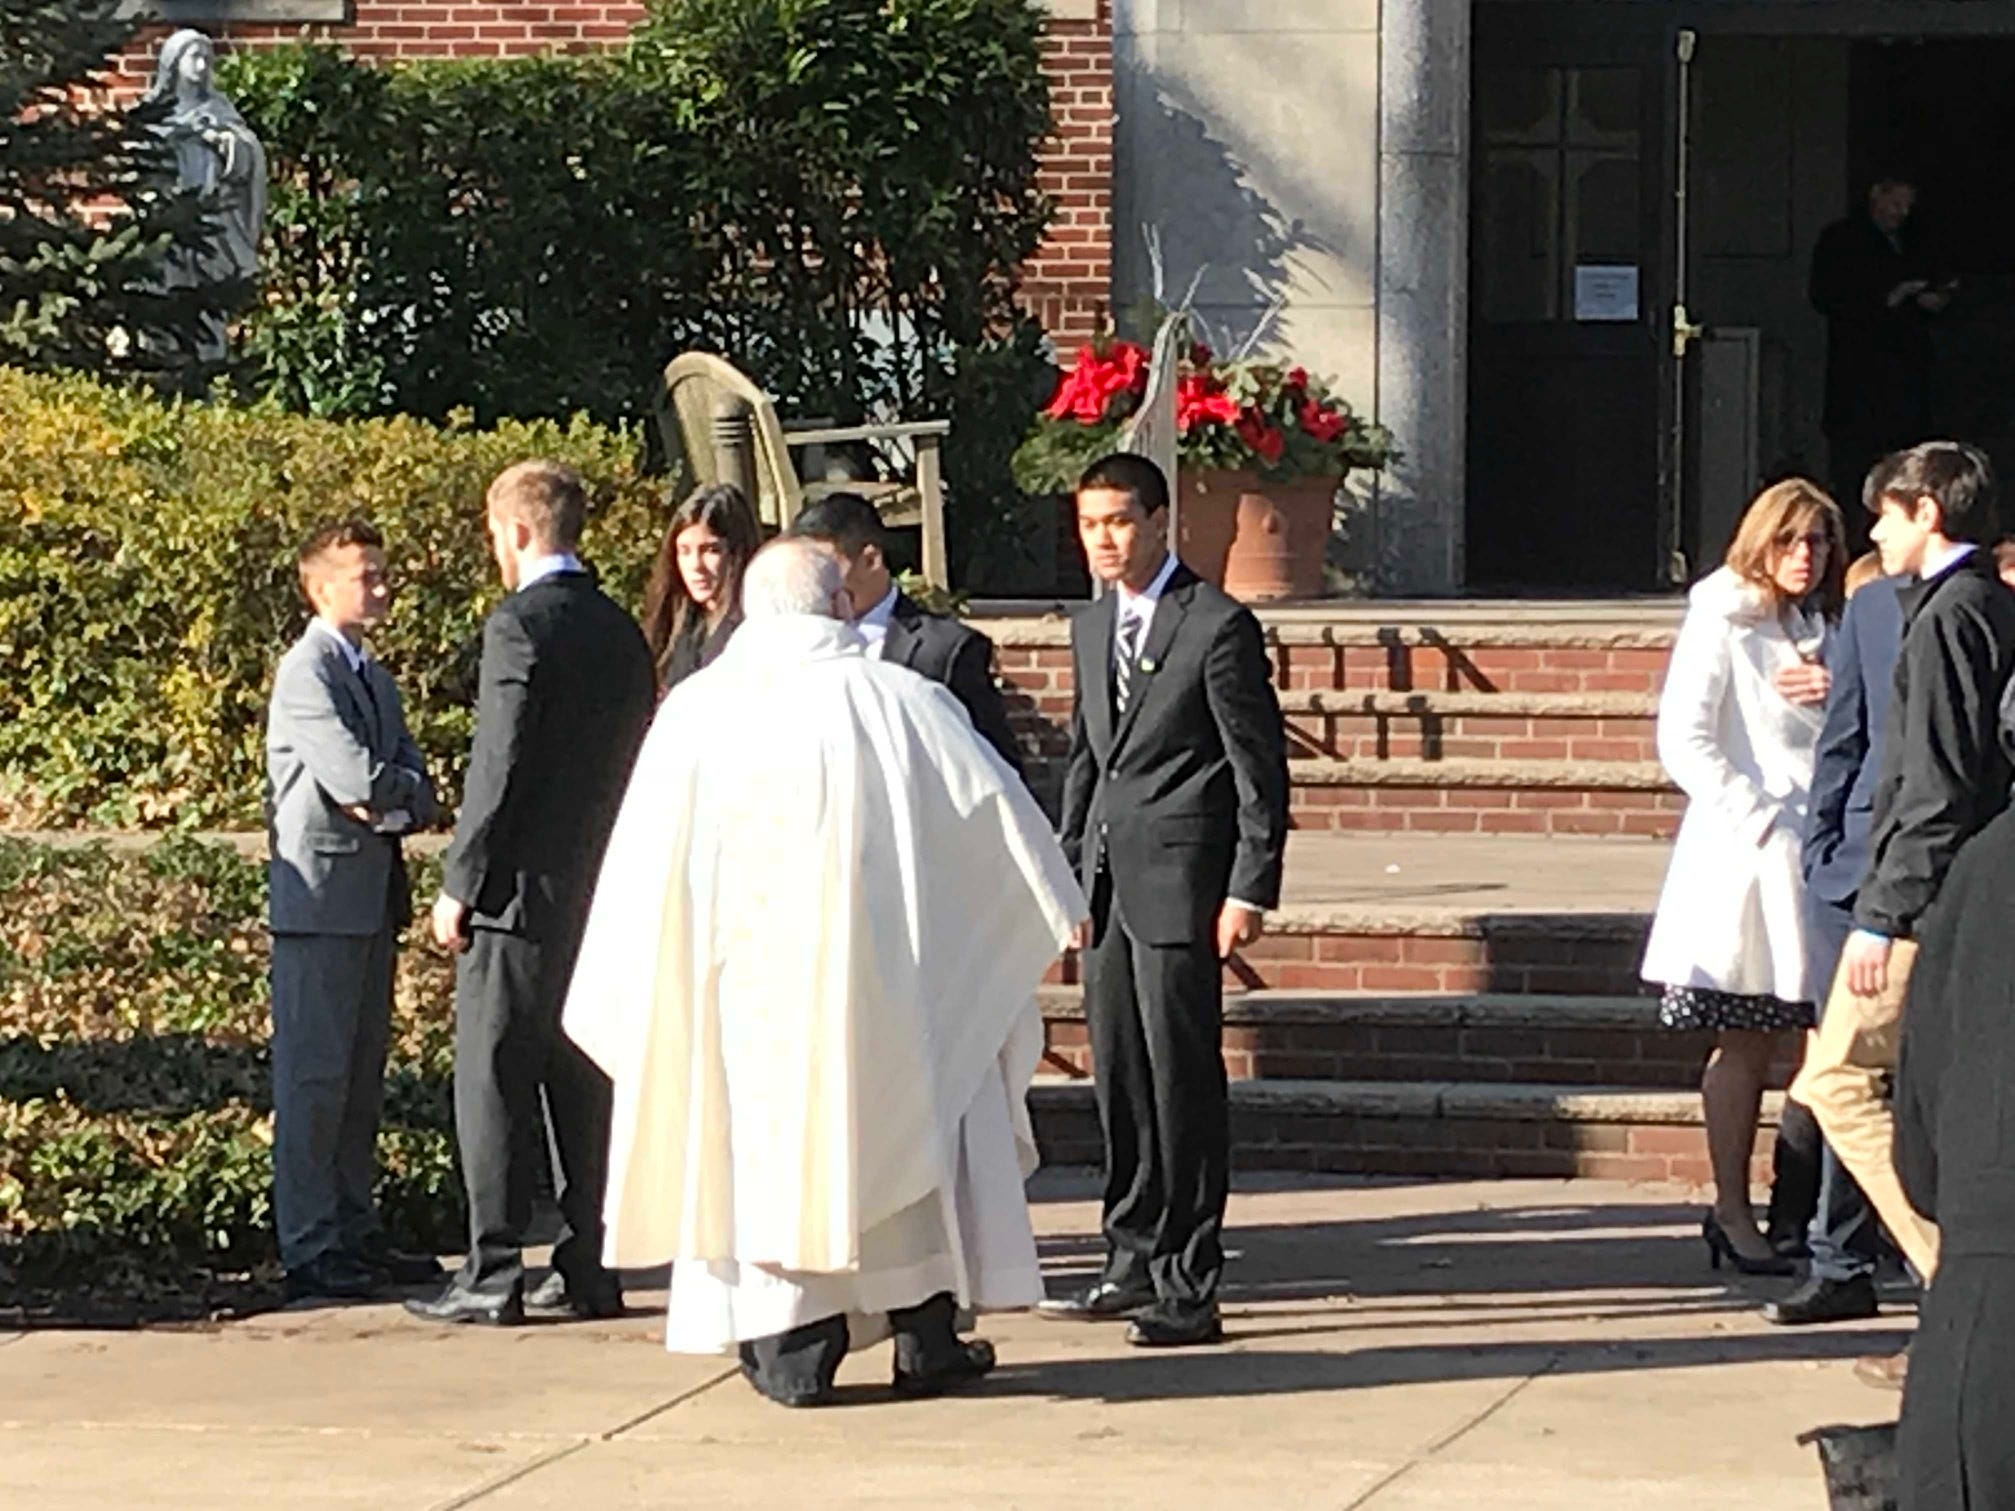 Mourners outside the church following the funeral for Michael Sot, 20, of Clark.